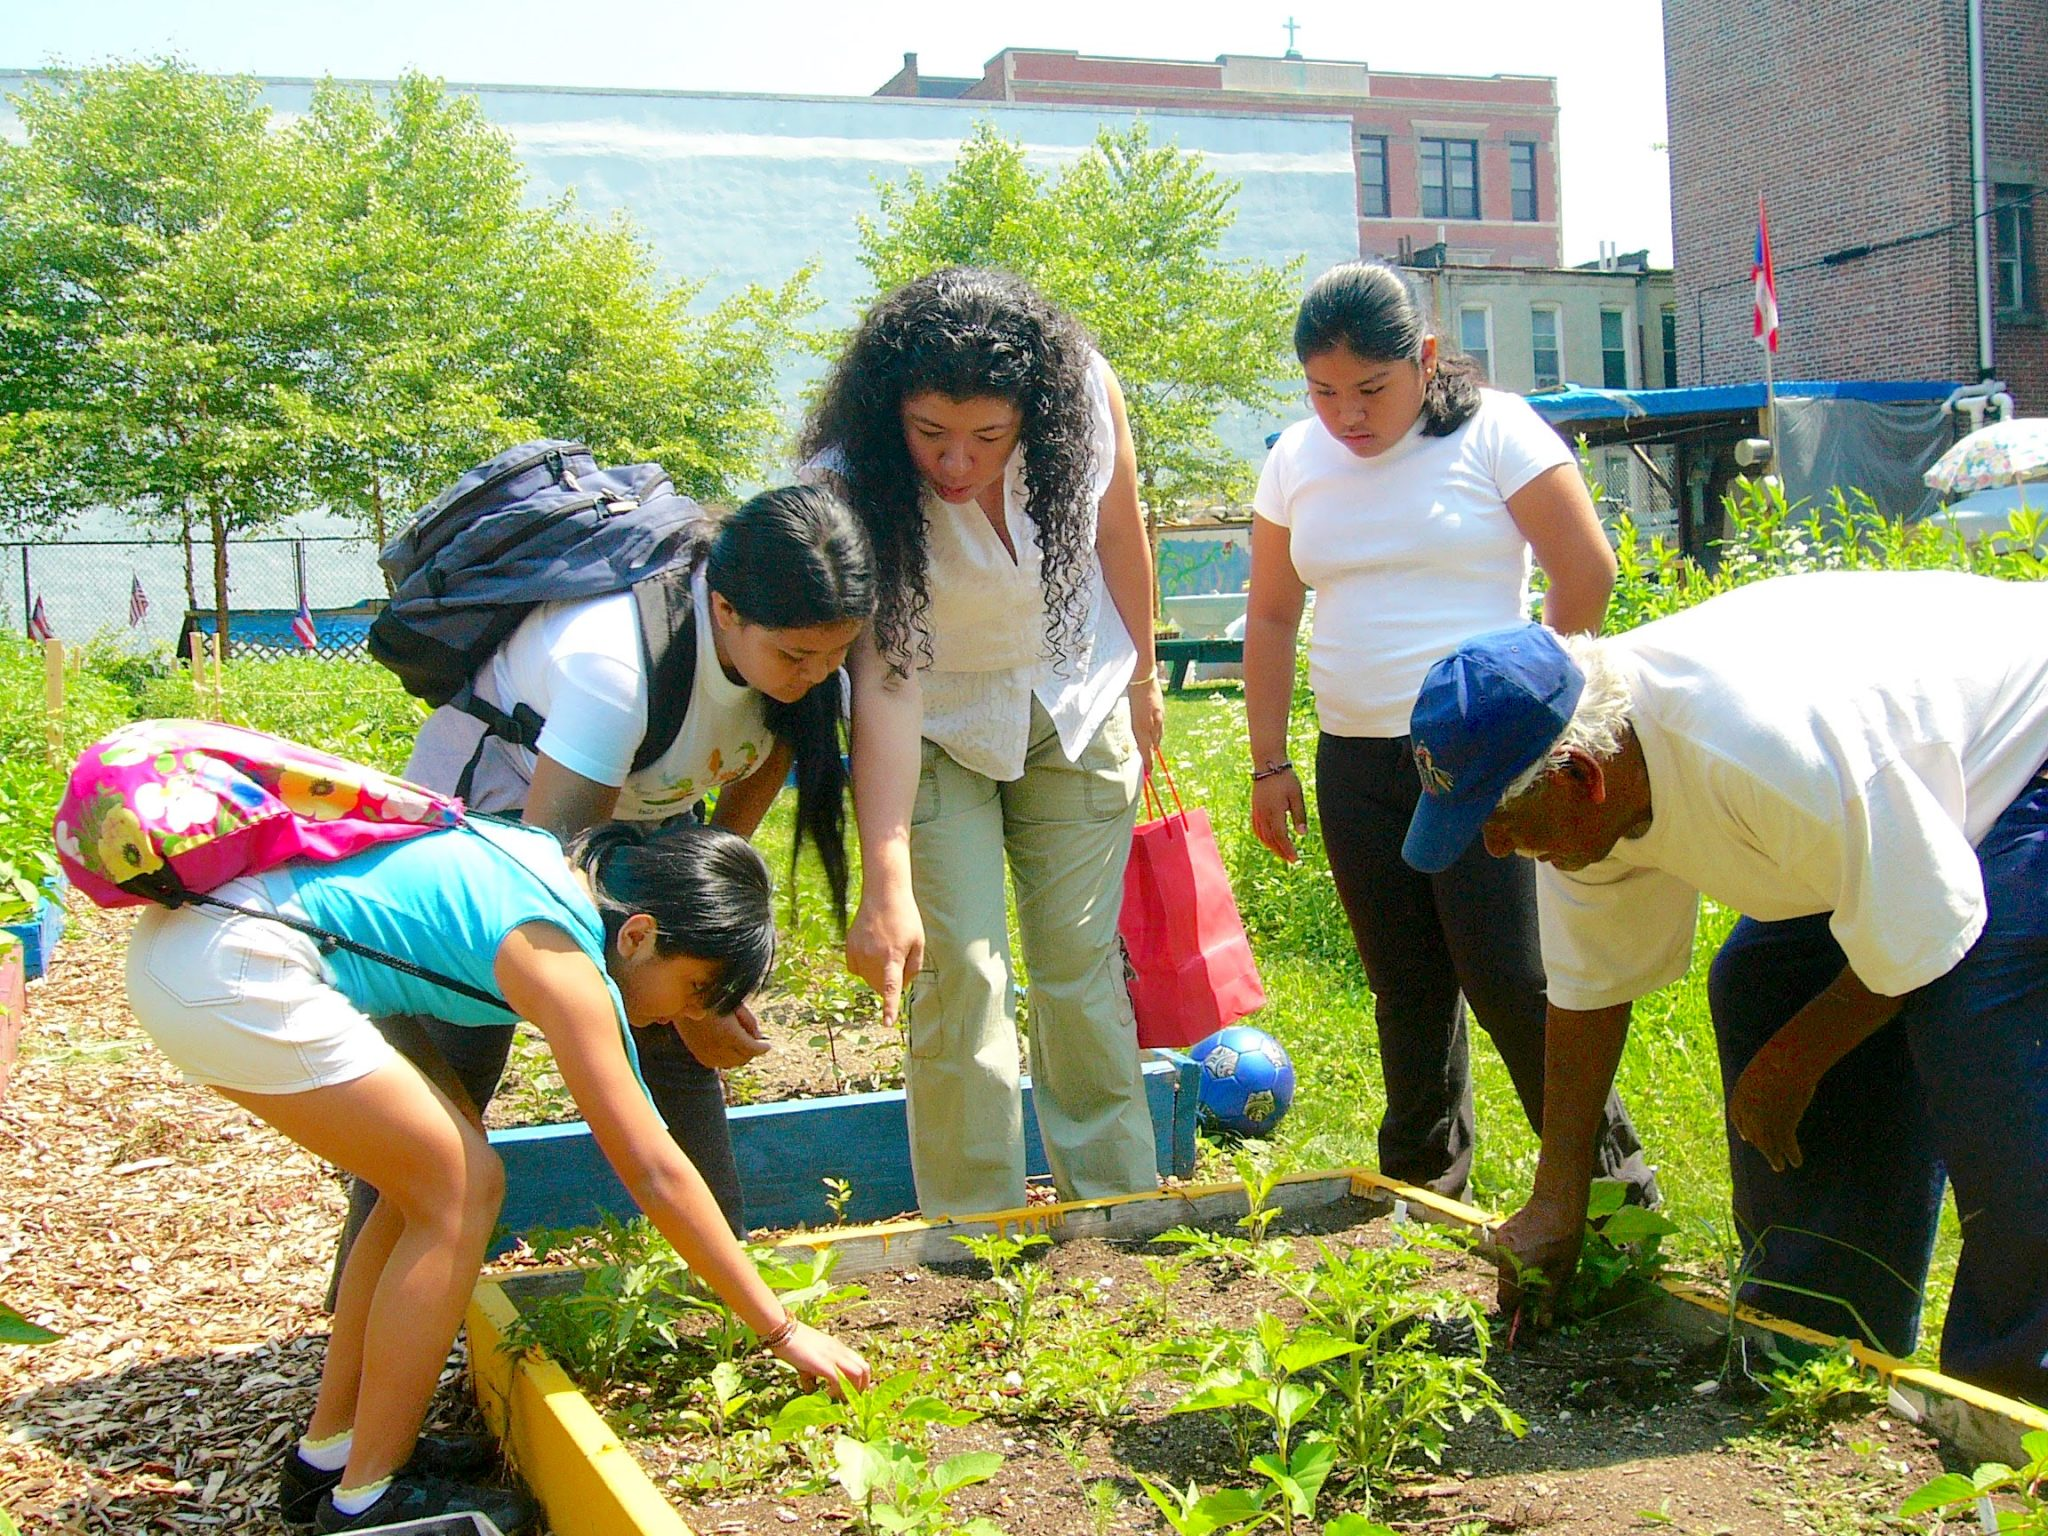 urban environmental education review the nature of cities intergenerational urban environmental education